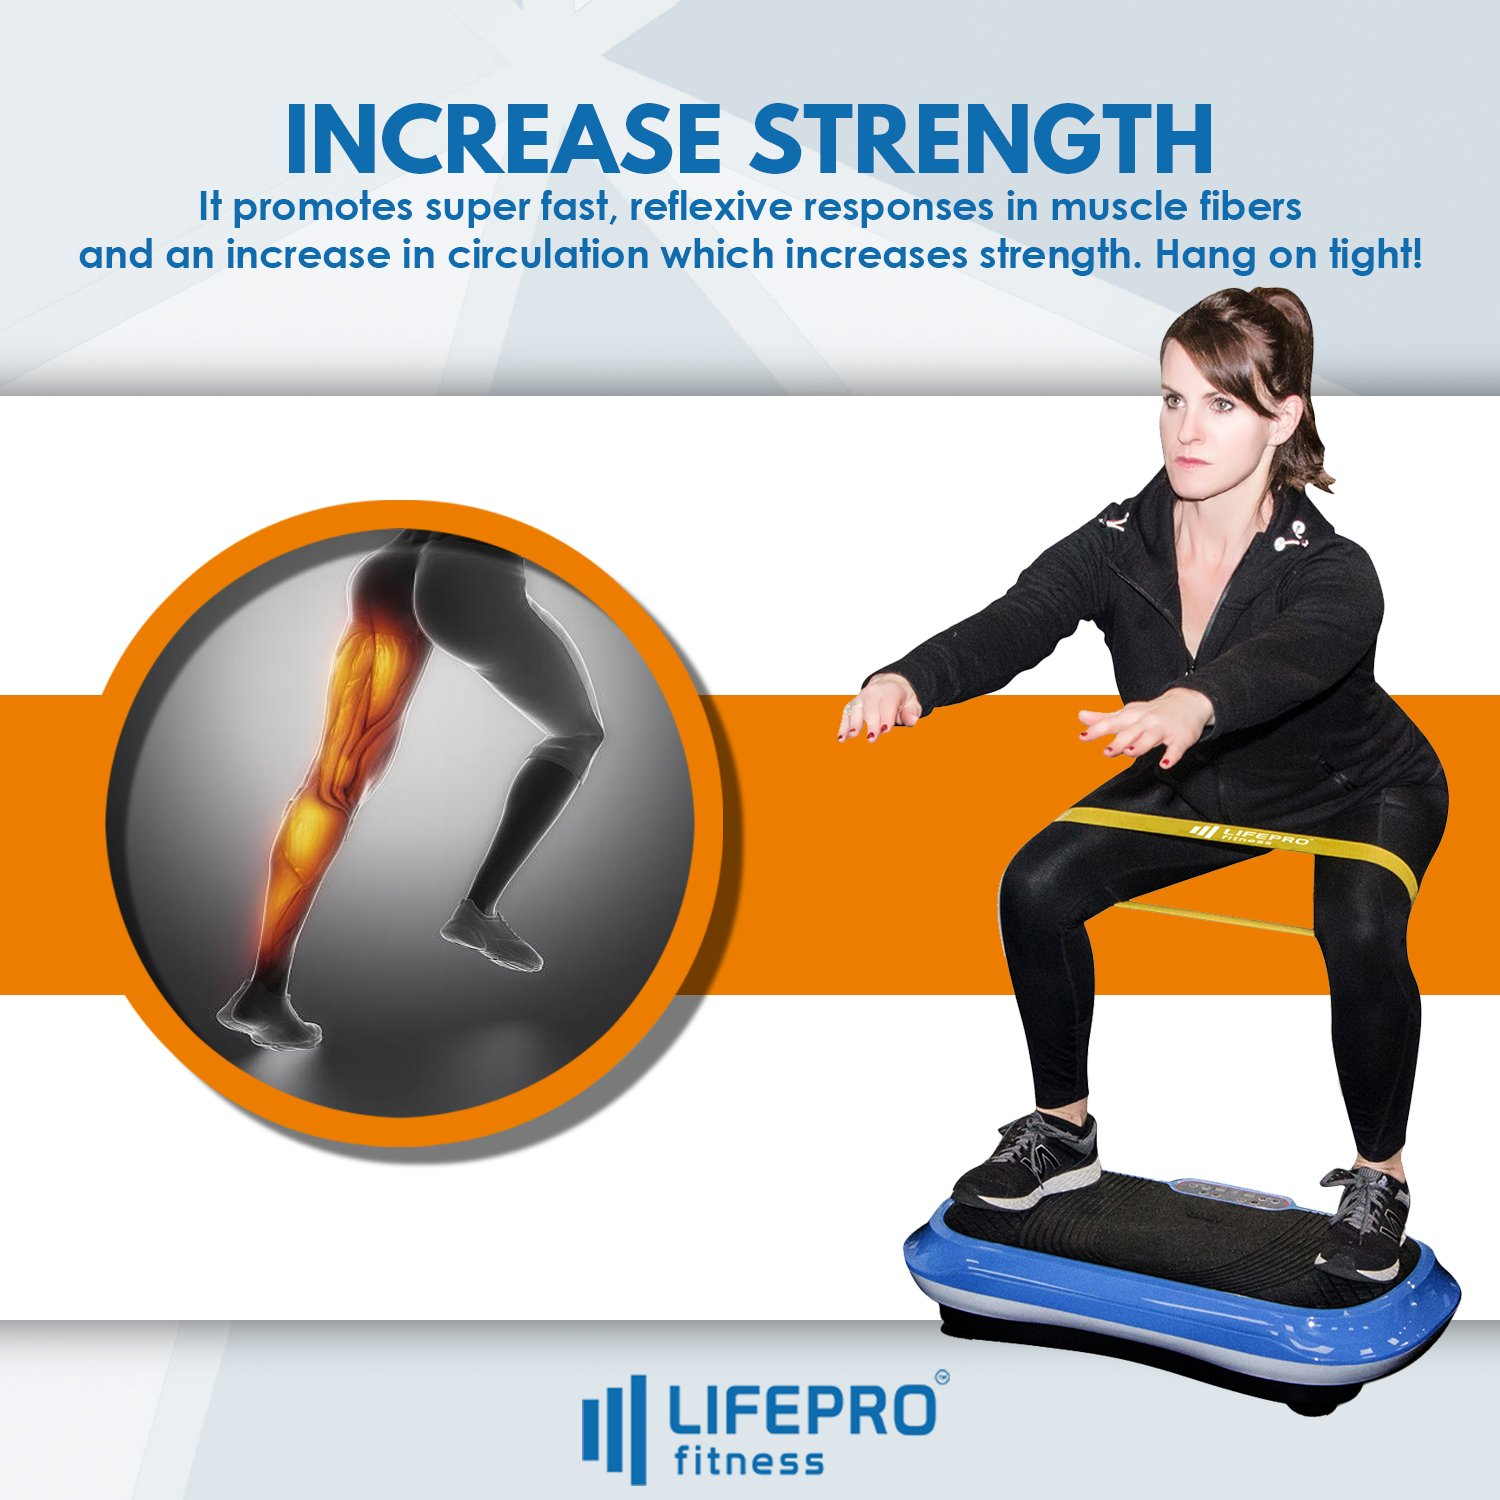 LifePro Vibration Plate Exercise Machine - Whole Body Workout Vibration Fitness Platform w/Loop Bands - Home Training Equipment for Weight Loss & Toning - Remote, Balance Straps, Videos & Manual by LifePro (Image #4)